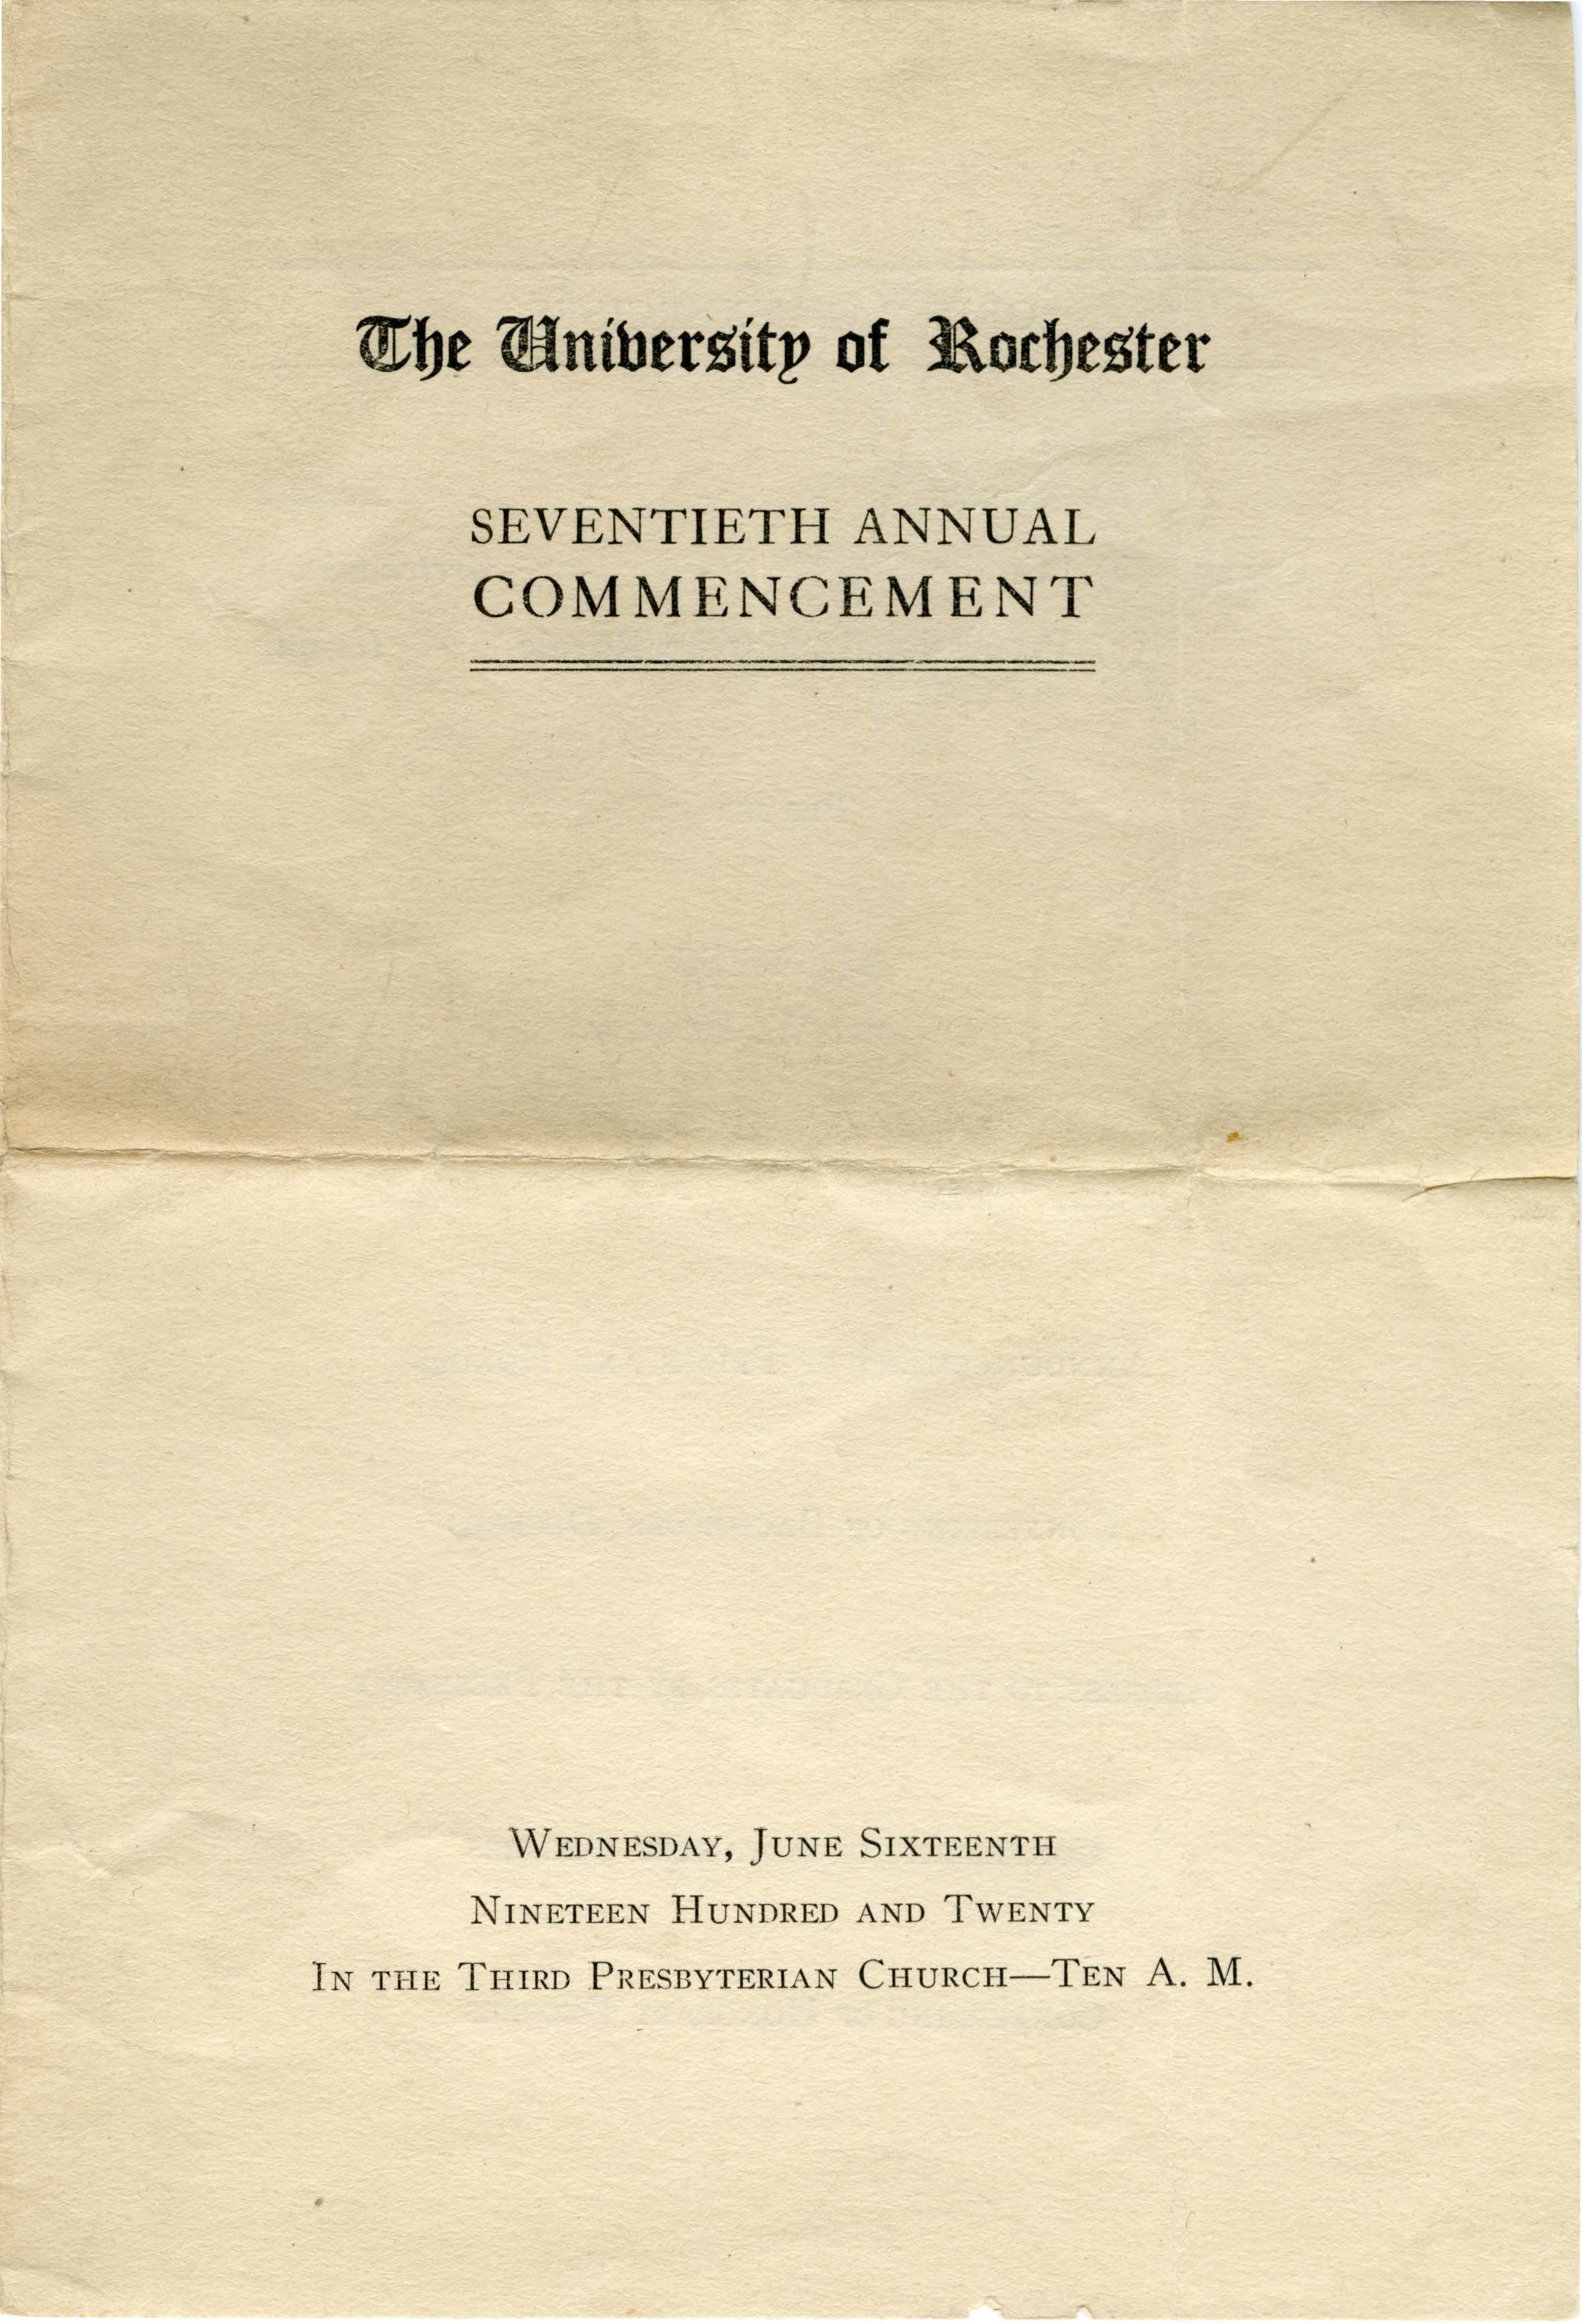 Commencement program, 1920